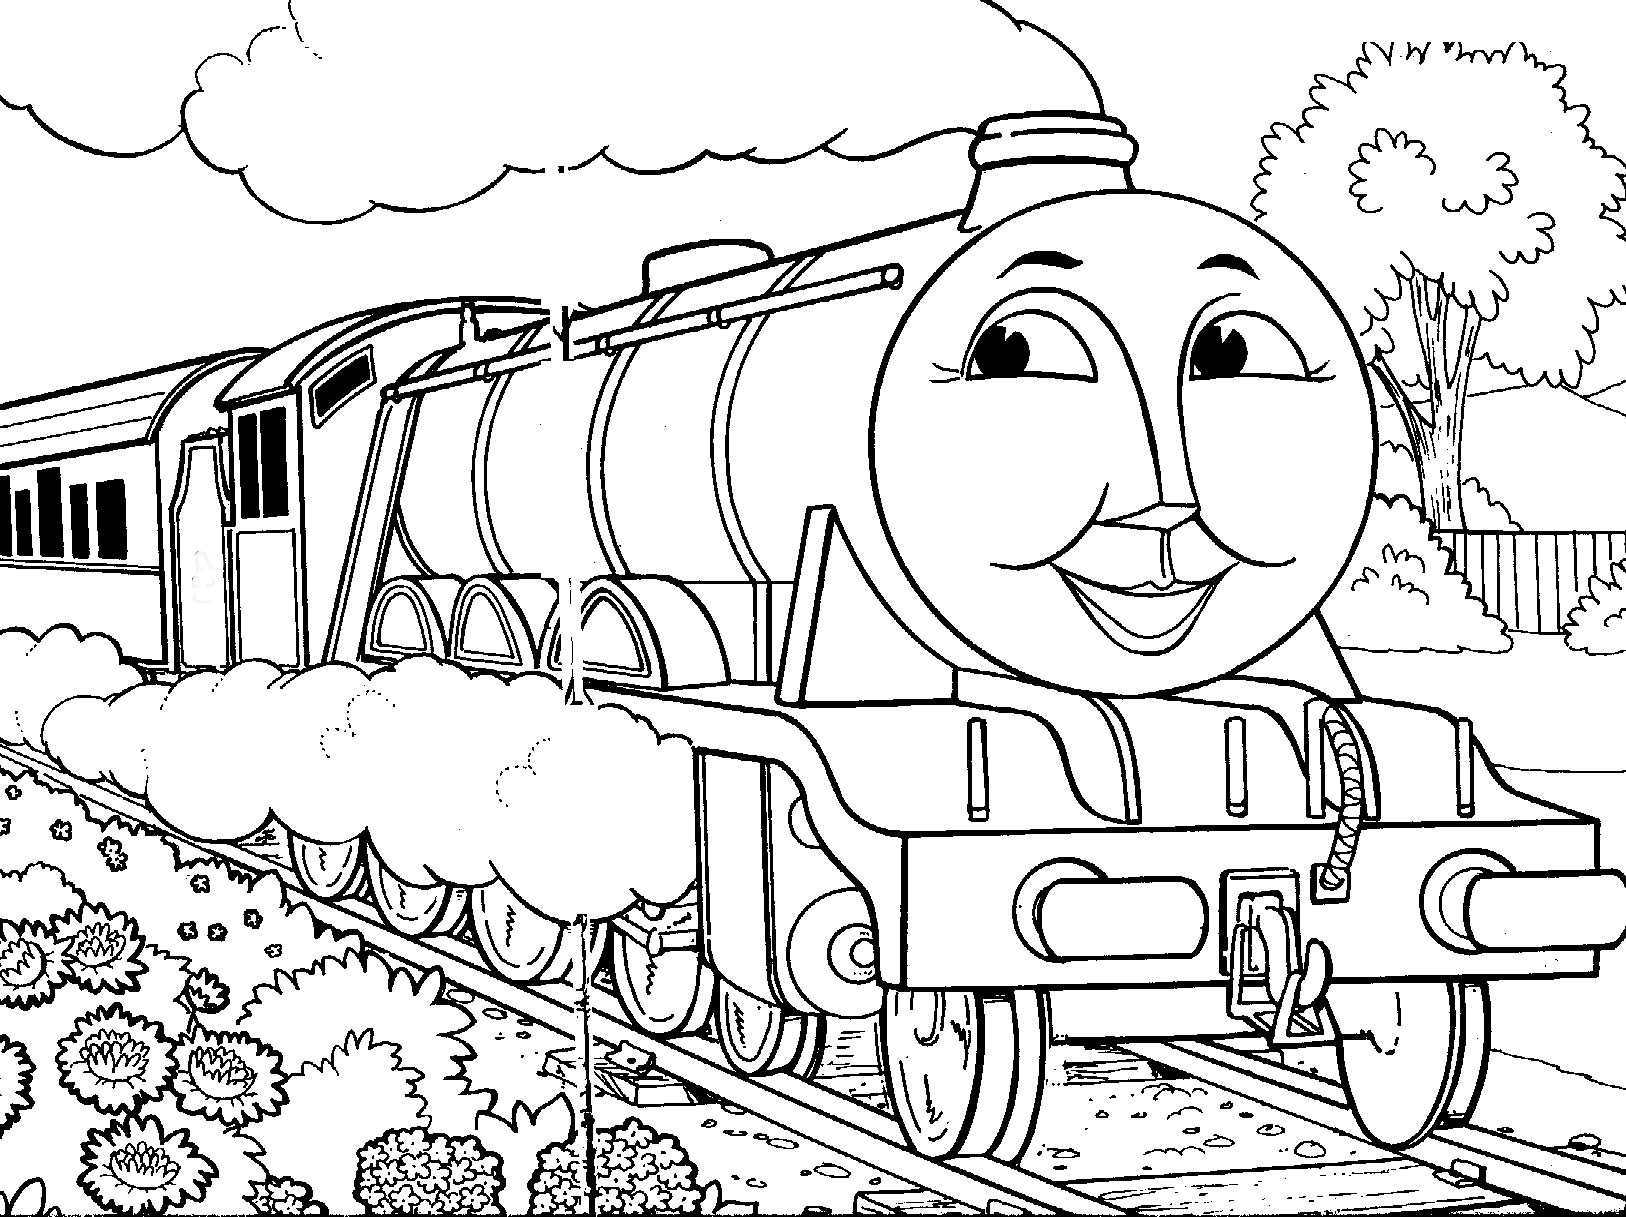 train engine coloring page free transportation coloring pages from sherriallencom train page engine coloring